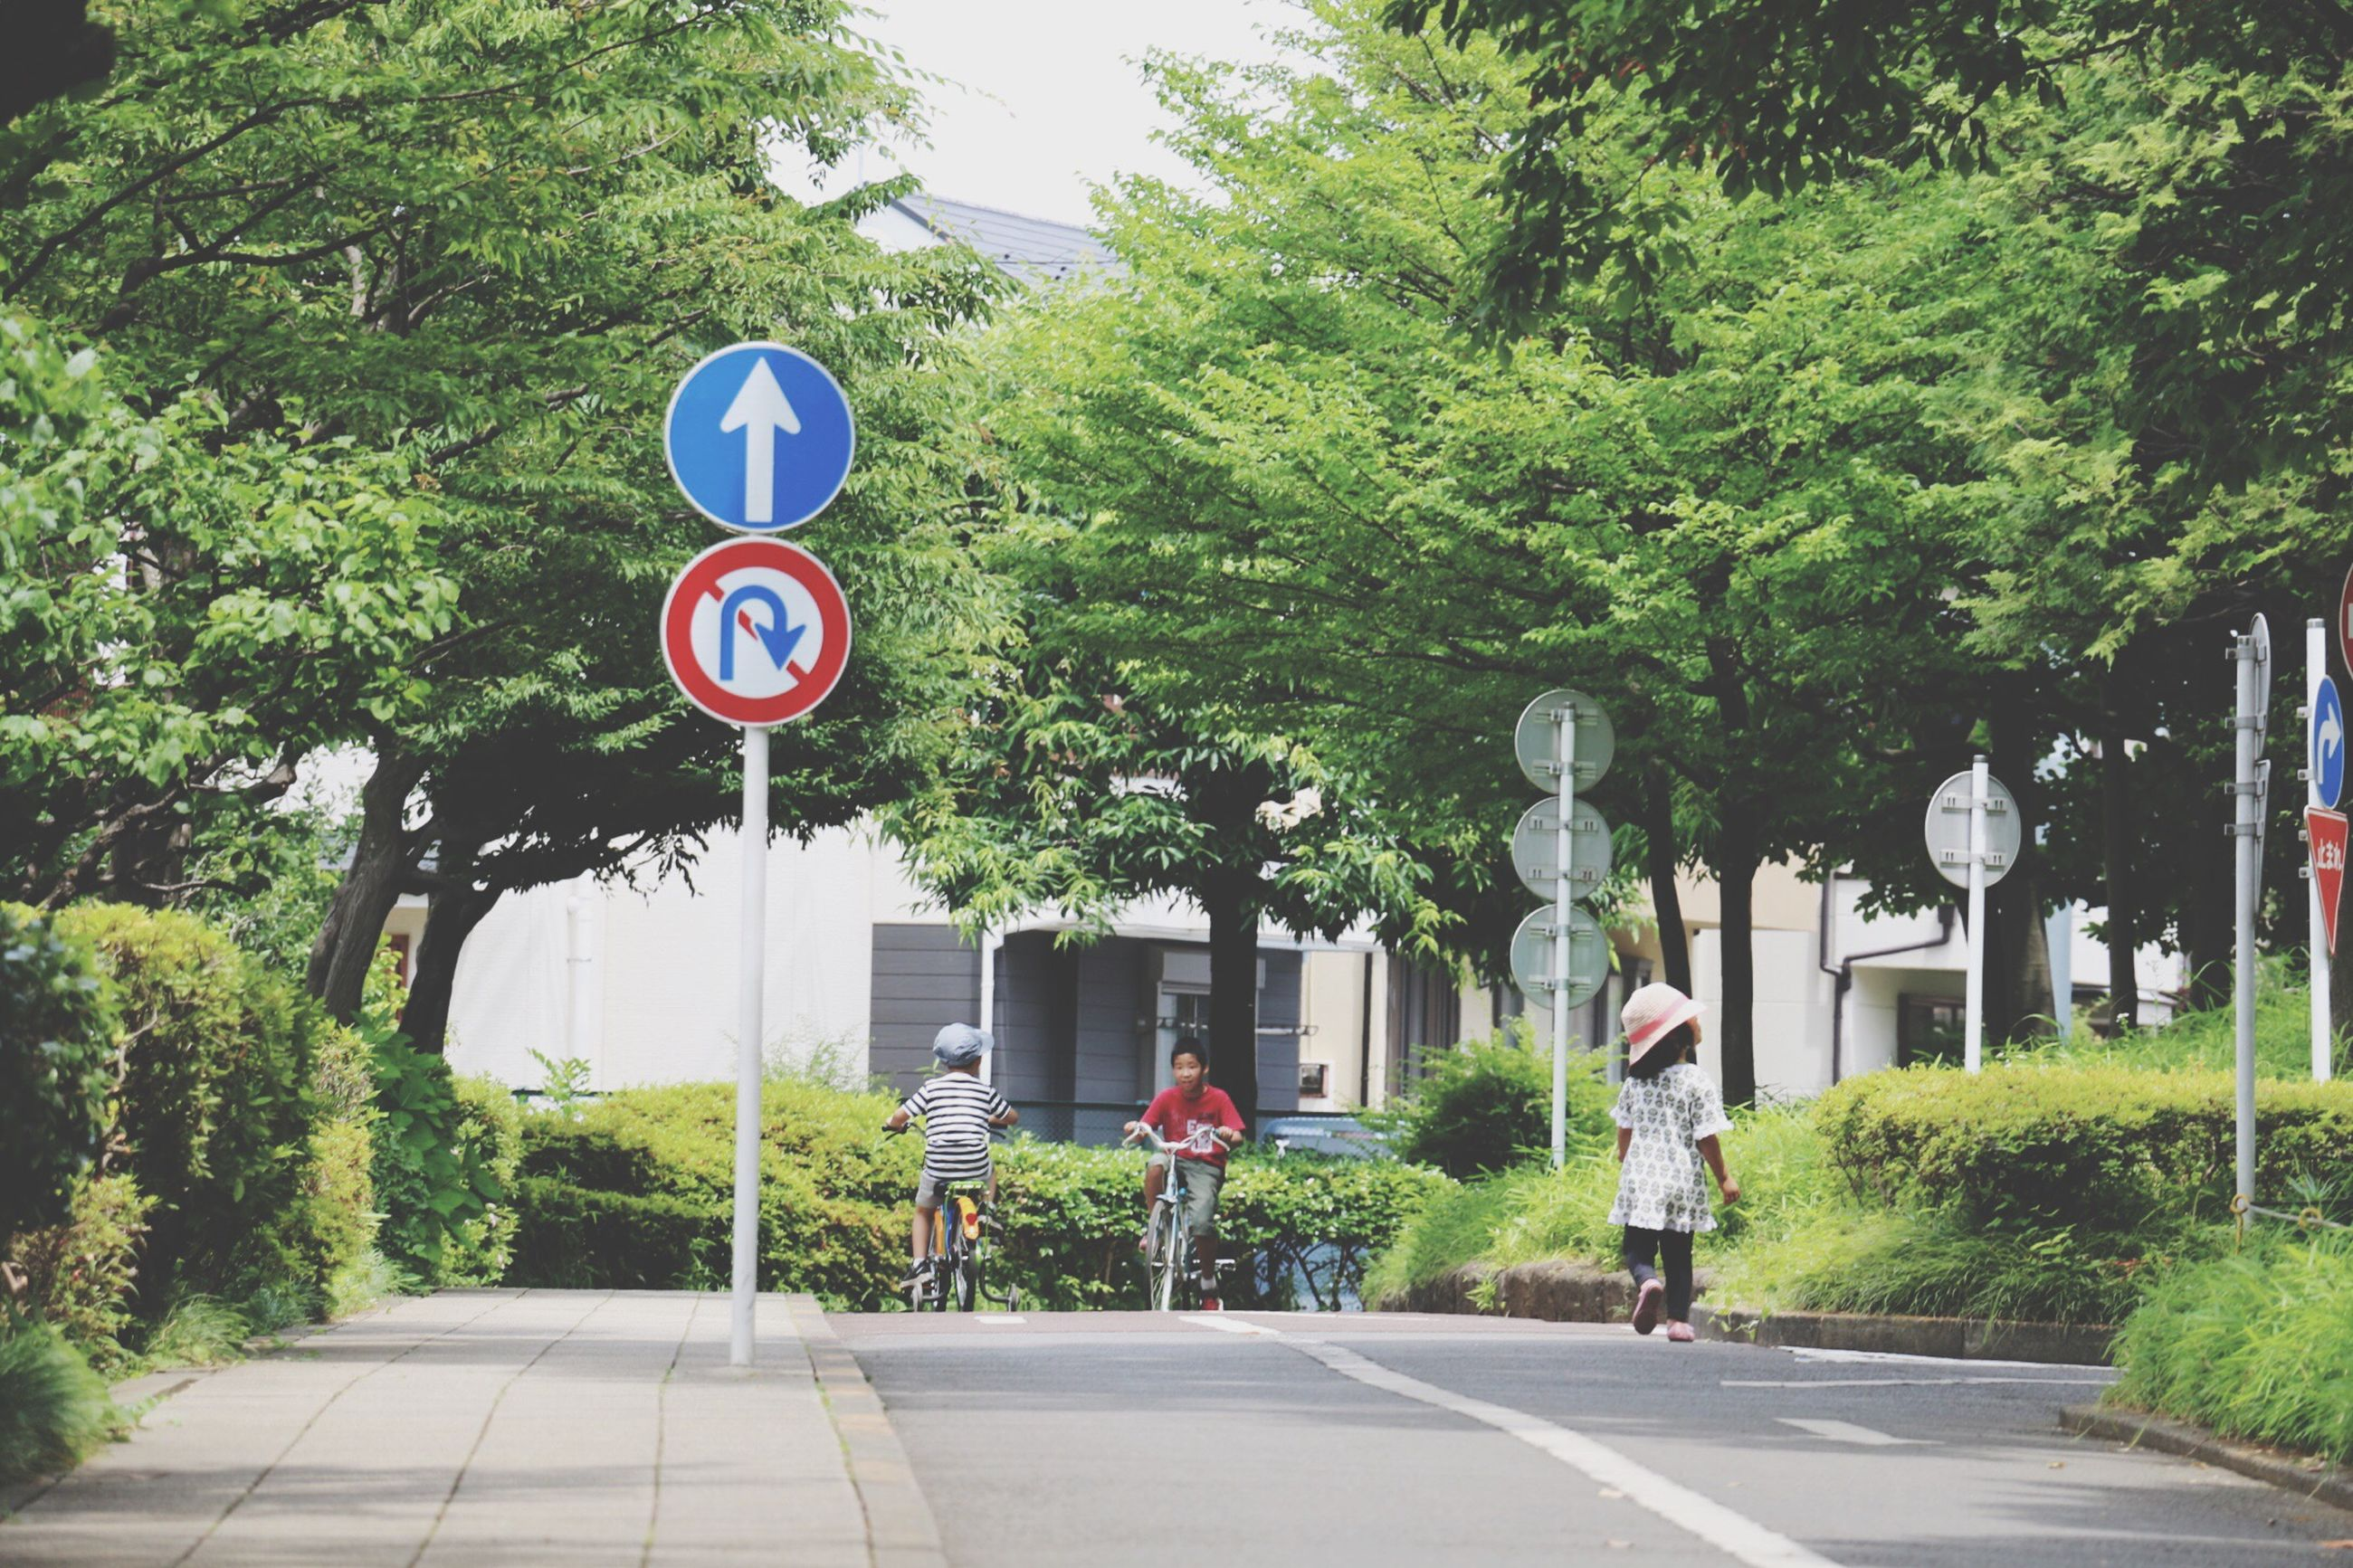 tree, text, communication, road sign, transportation, road, street, western script, information sign, sign, guidance, road marking, the way forward, arrow symbol, walking, city, directional sign, men, day